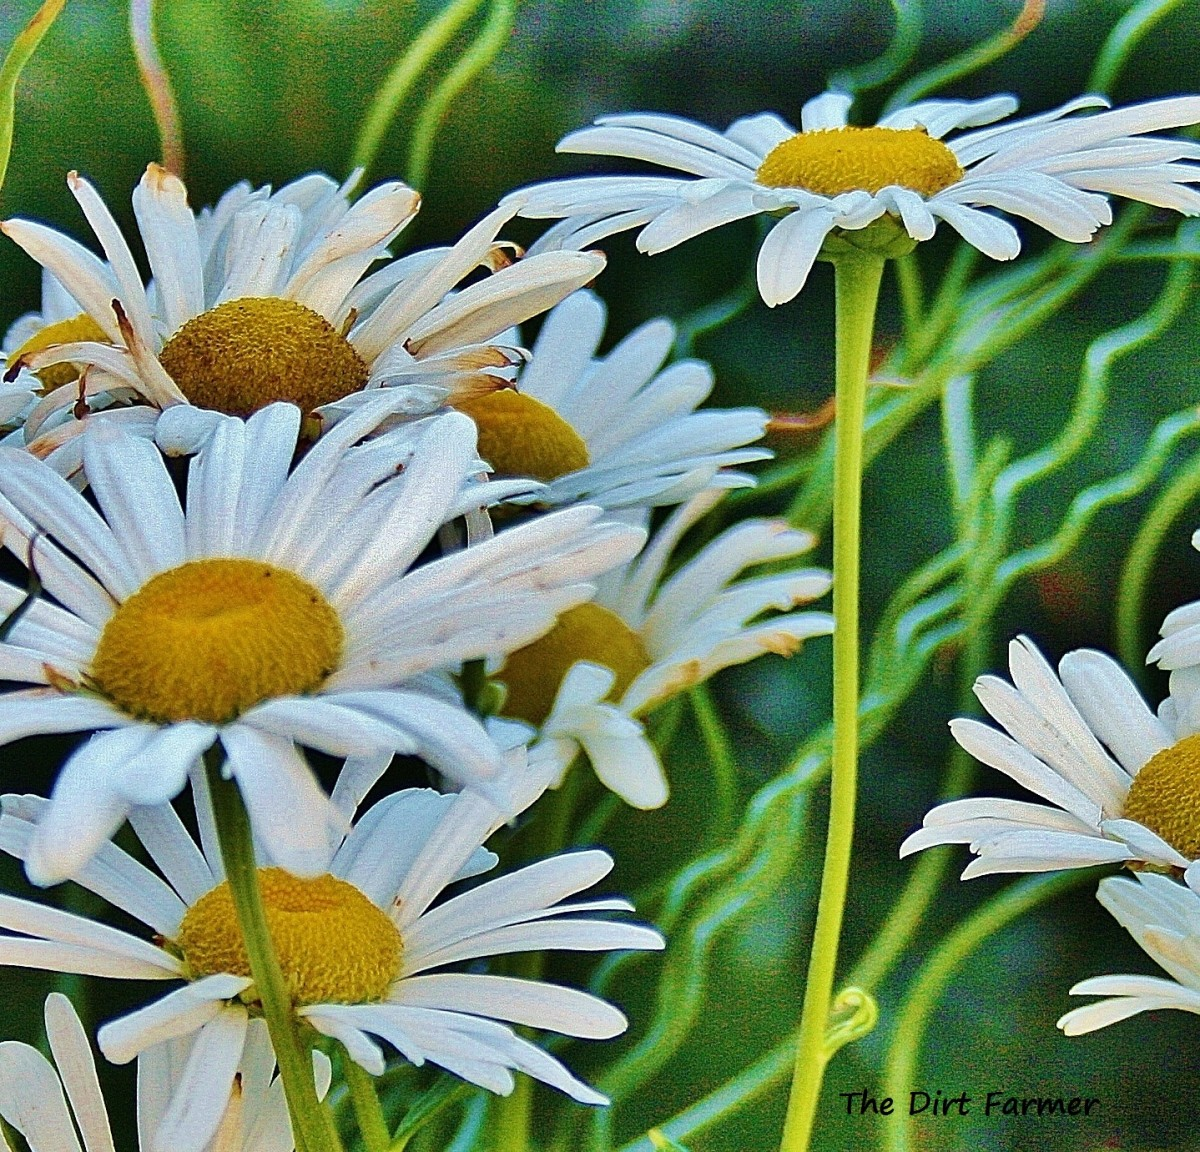 Because Montauk flower stems are long and sturdy, they're a popular choice for cutting gardens and floral arrangements.